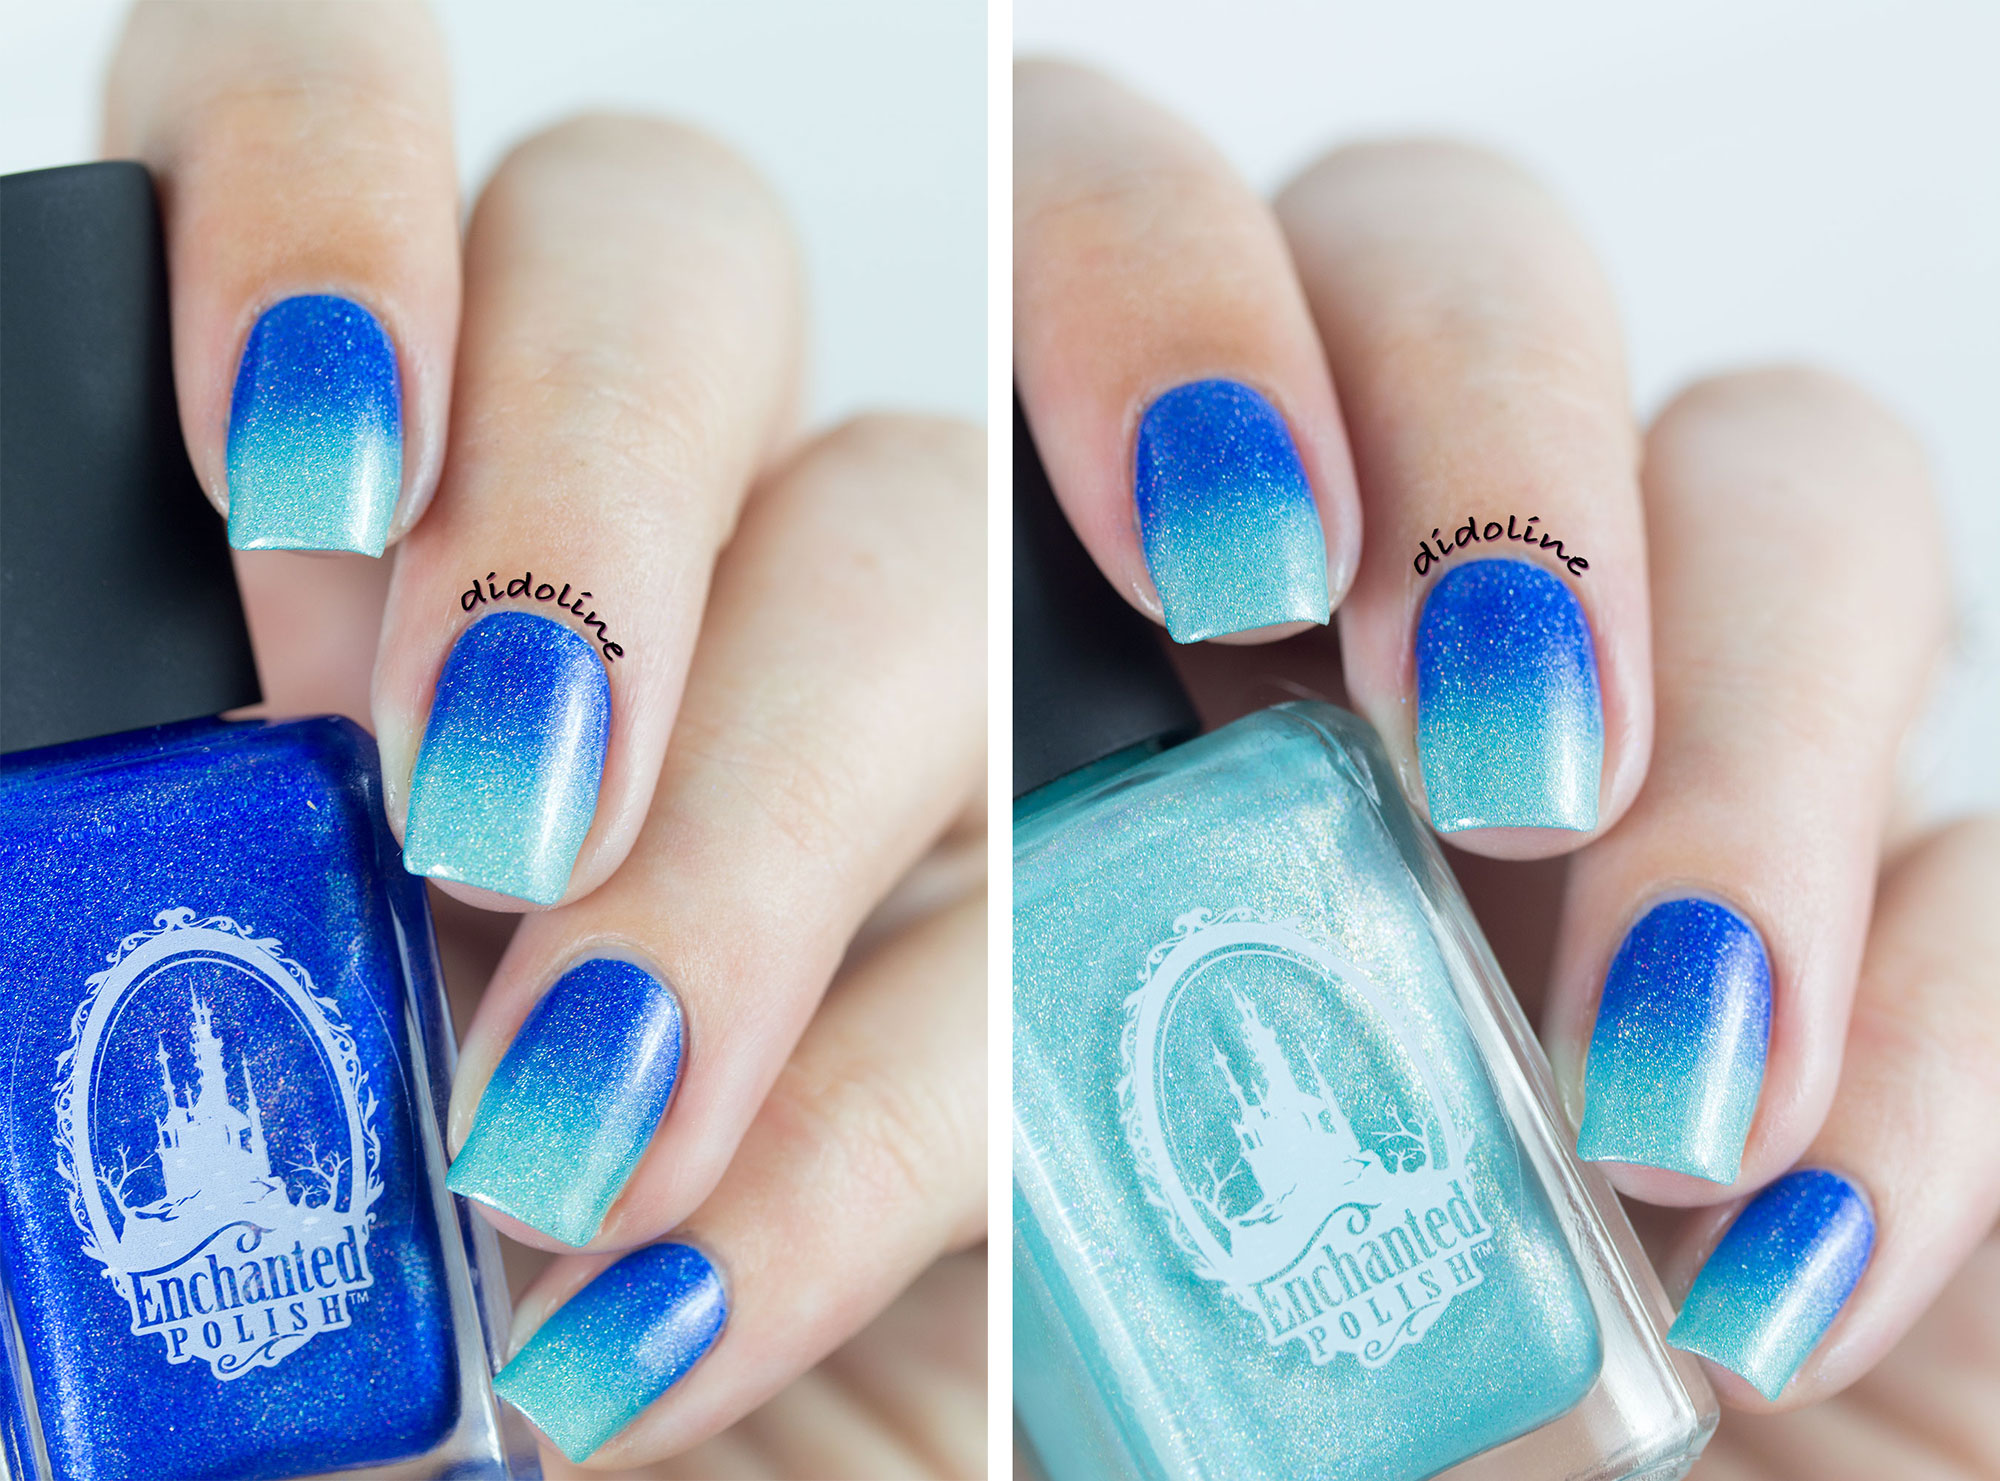 Enchanted Polish - Dégradé May 2015 et Daydream